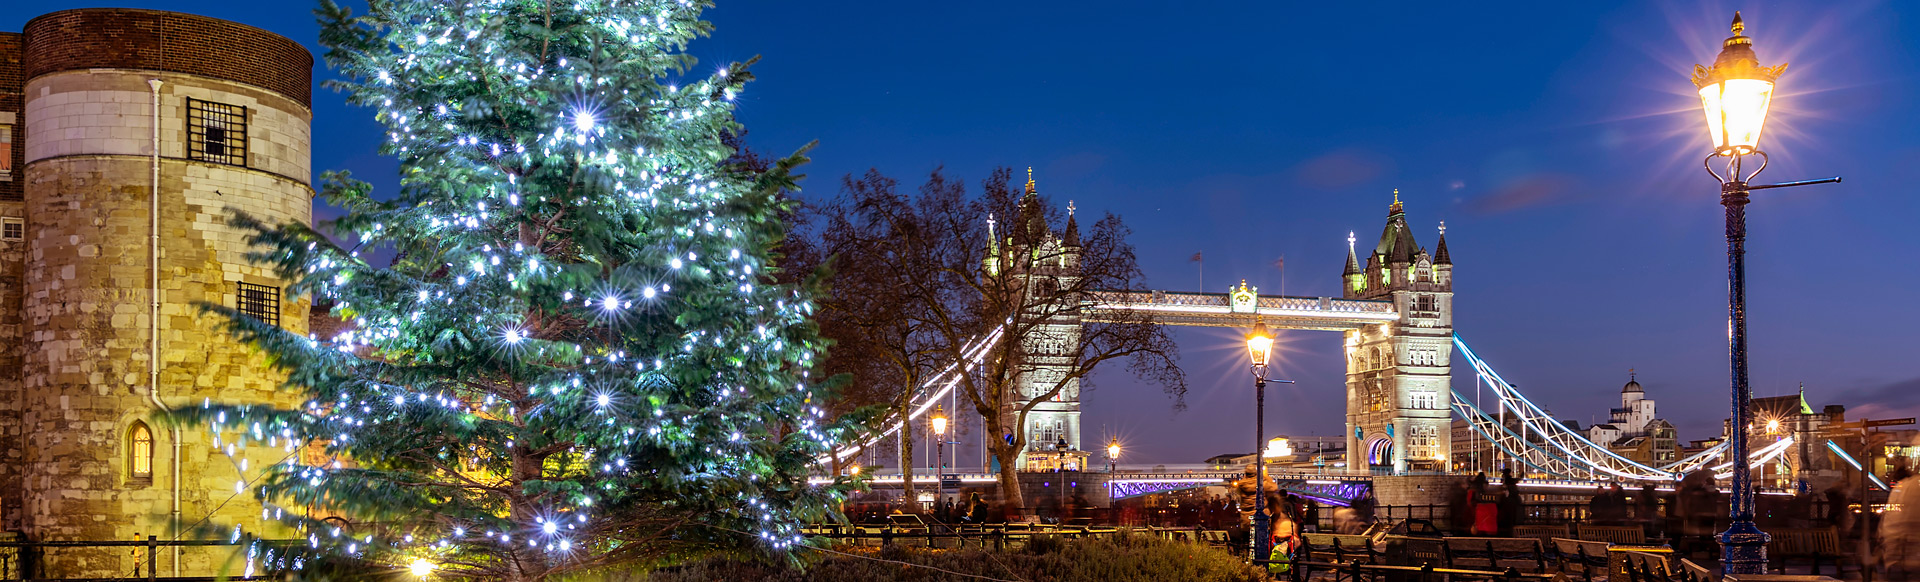 Christmas Day Activities 2020 Christmas in London 2020   What's On   visitlondon.com